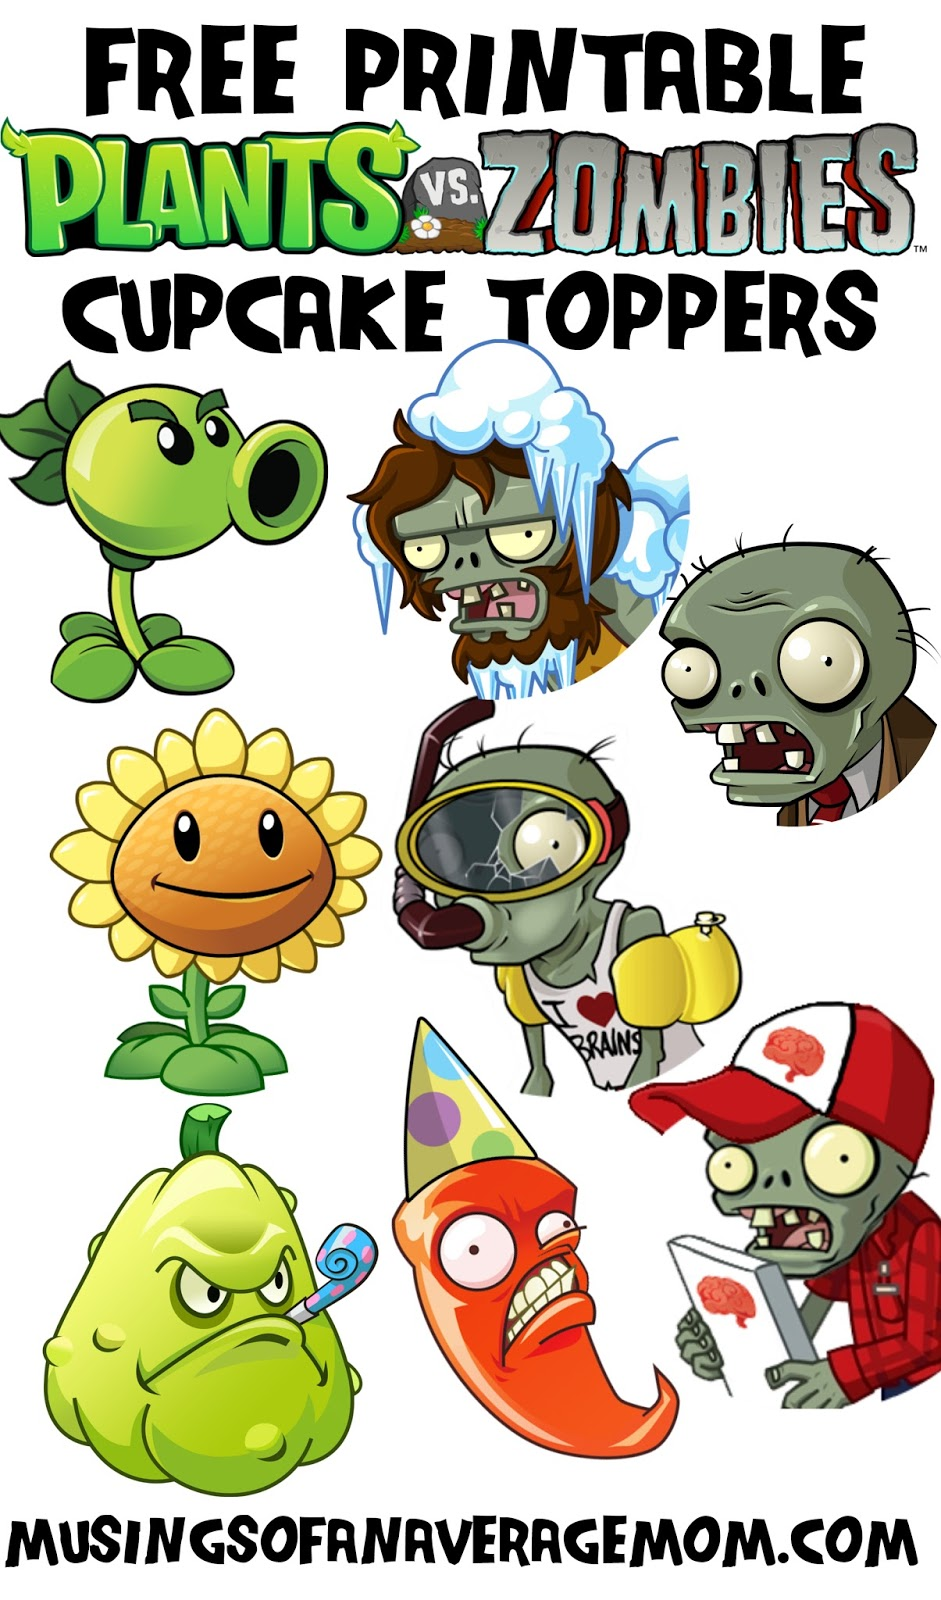 Musings Of An Average Mom Plants Vs Zombies Cupcake Toppers